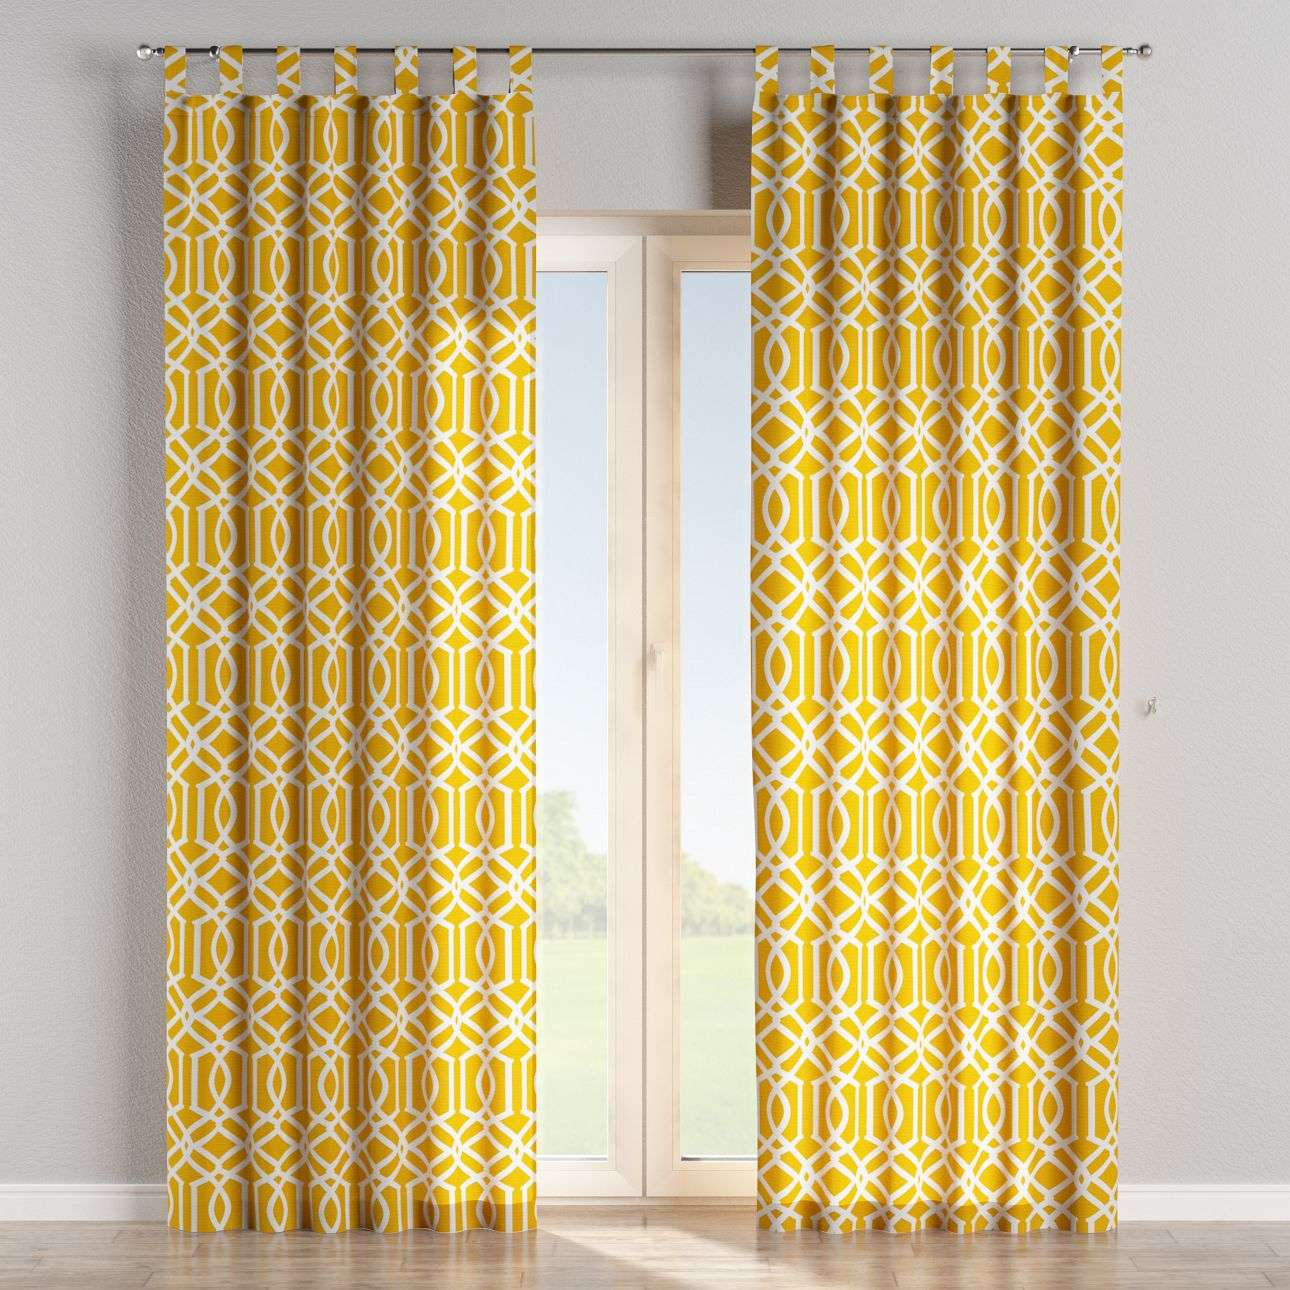 Tab top curtains in collection Comics/Geometrical, fabric: 135-09